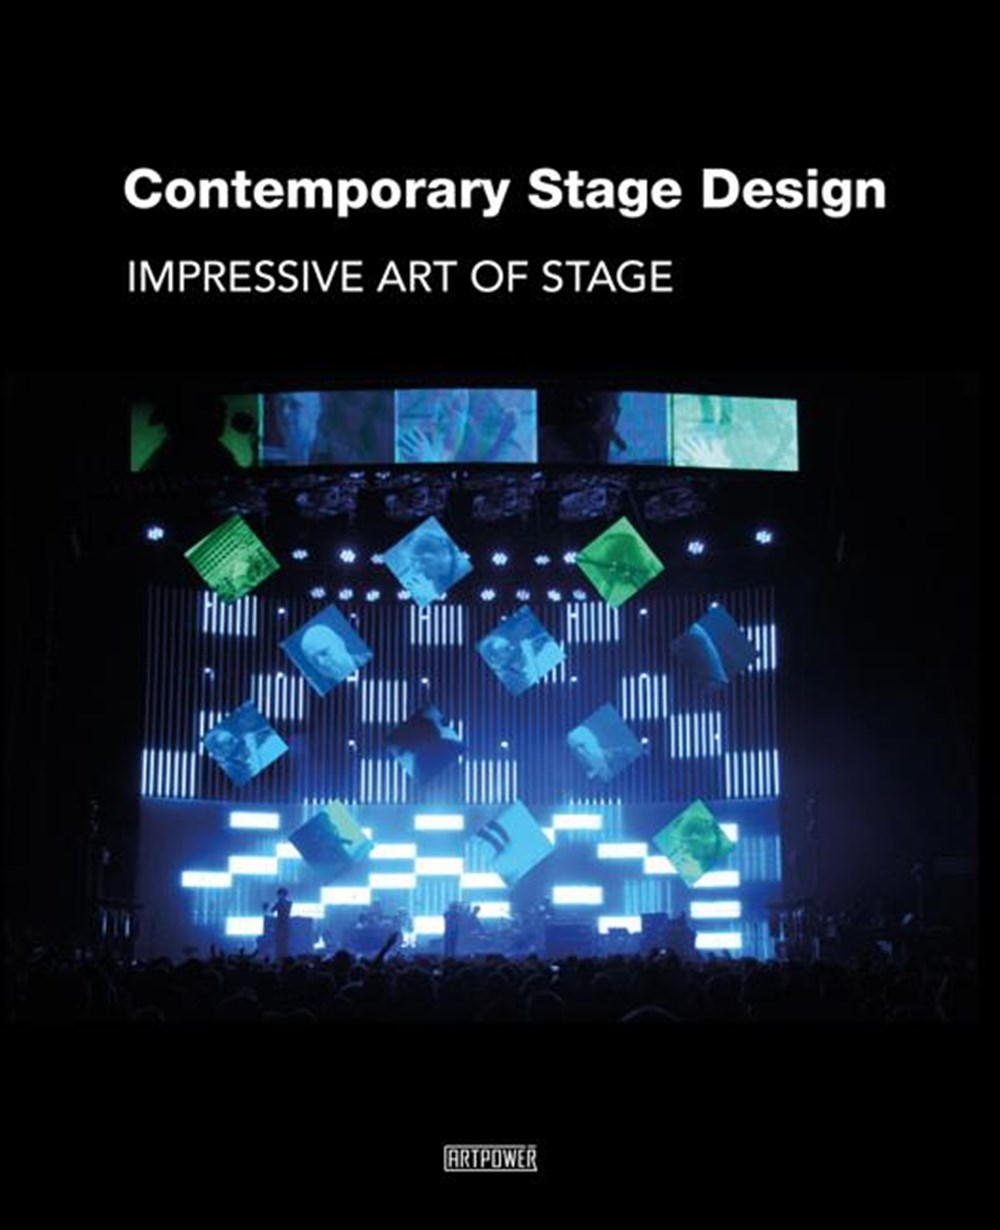 Contemporary Stage Design Impressive Art of Stage